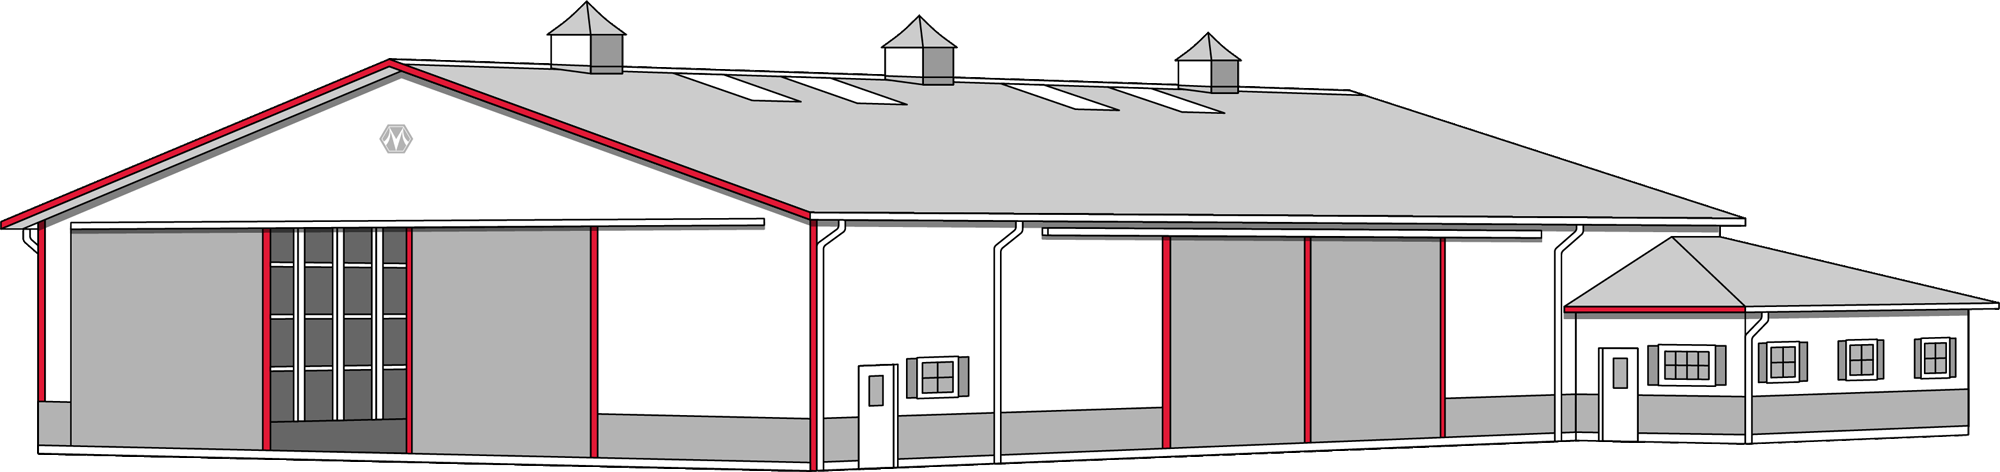 clip black and white download Warehouse clipart pole barn. Repairs morton buildings steel.